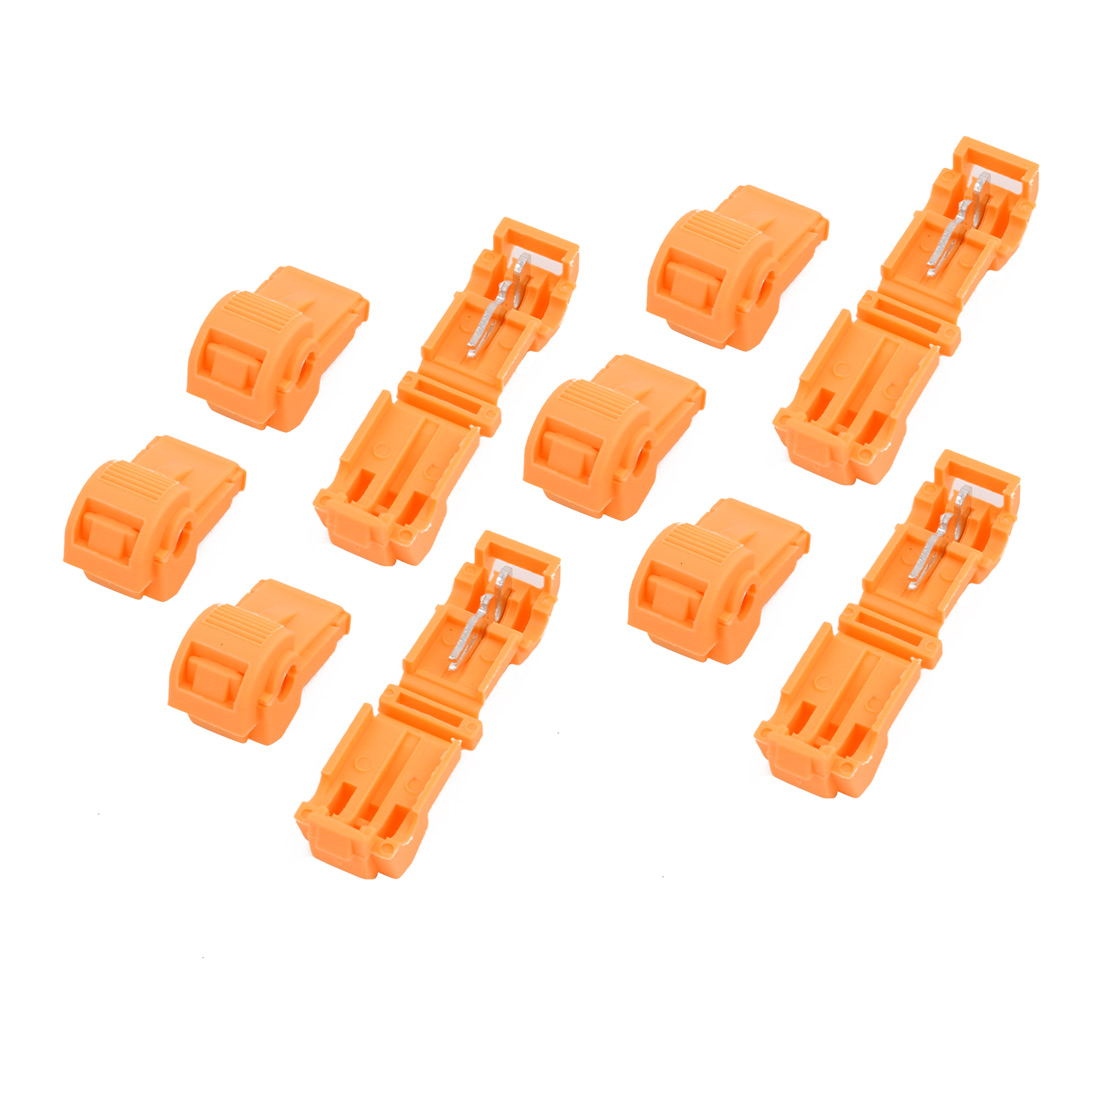 10 Pcs Self-Stripping Electrical T-Tap Wire Spade Terminal Crimp Kit Yellow - image 2 of 2